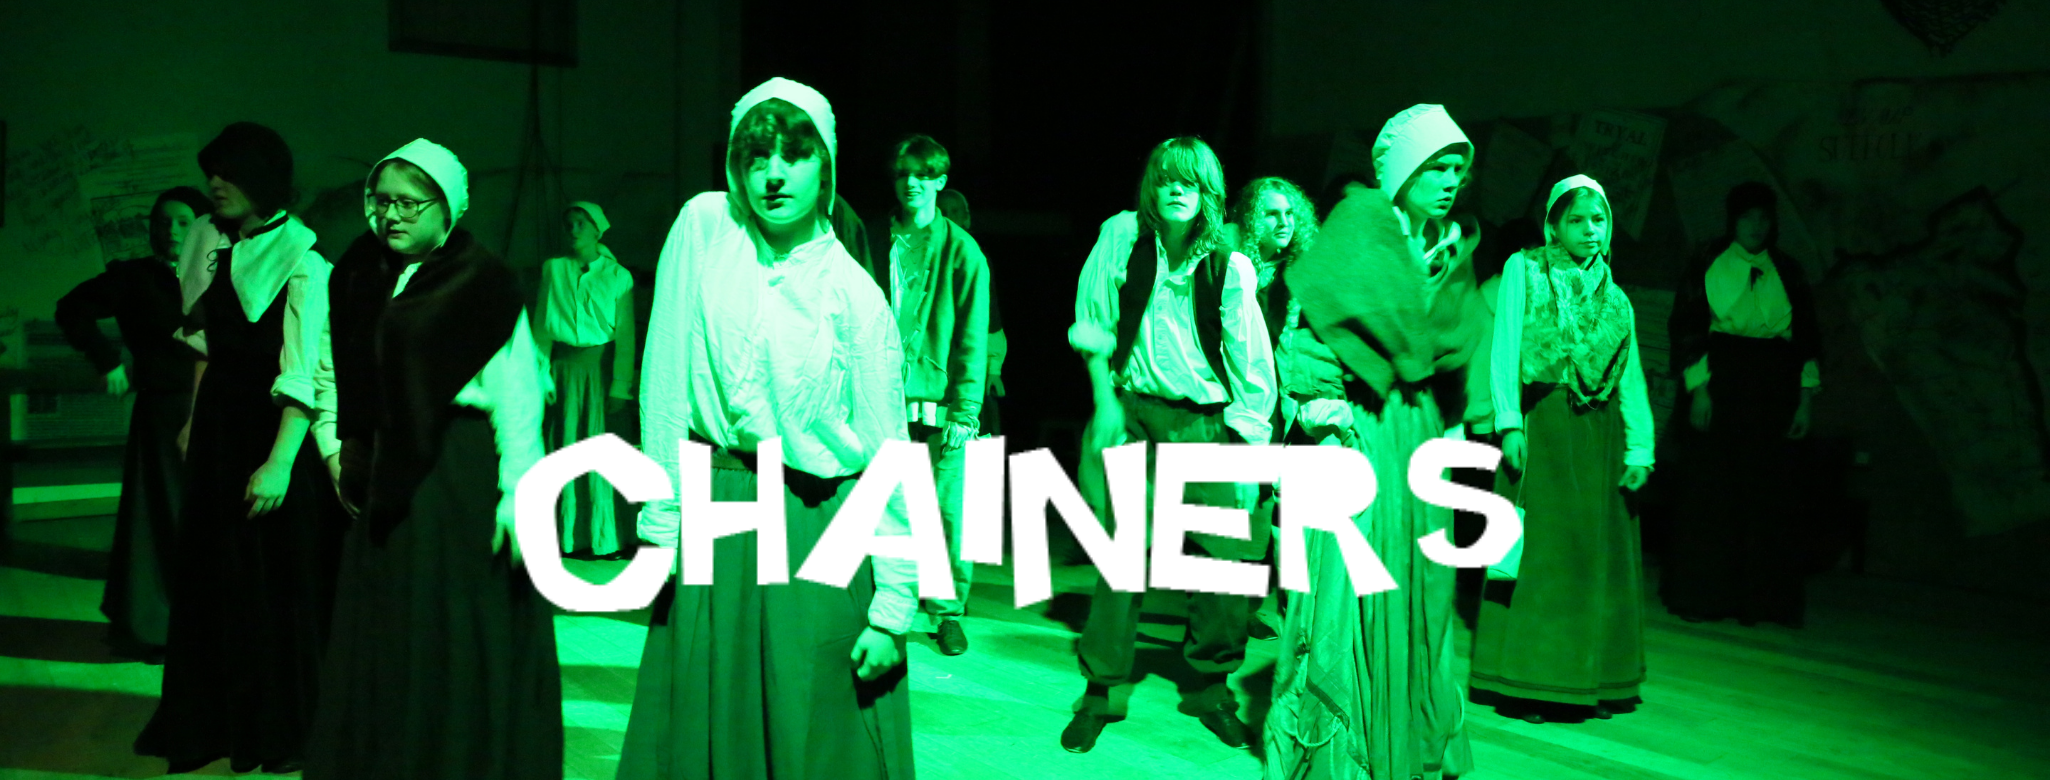 The Chainers Youth Theatre